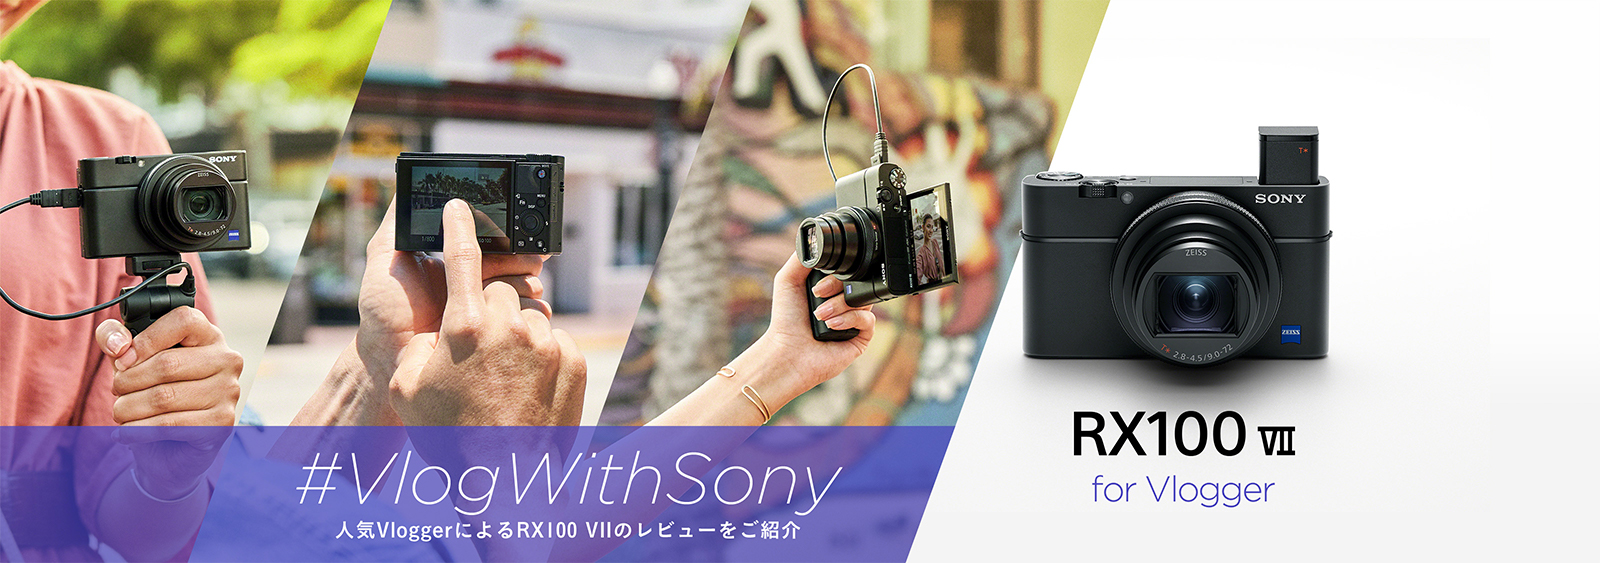 #Vlog With Sony 人気Vloggerによるrx100 VIIのレビューをご紹介 RX100VII for Vlogger